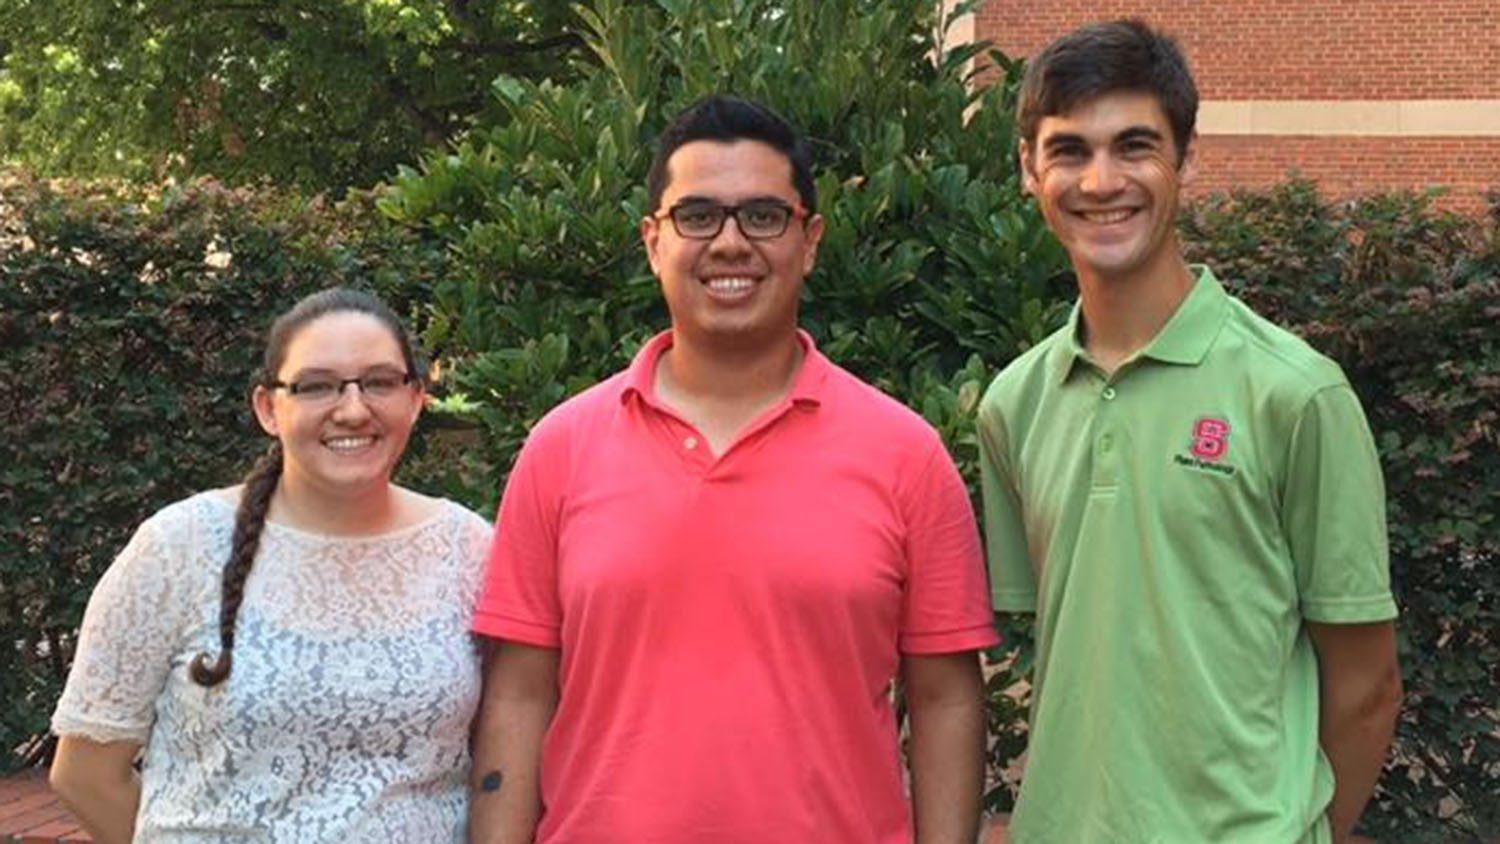 Emily Meyers, Camilio Parada and Nathan Miller